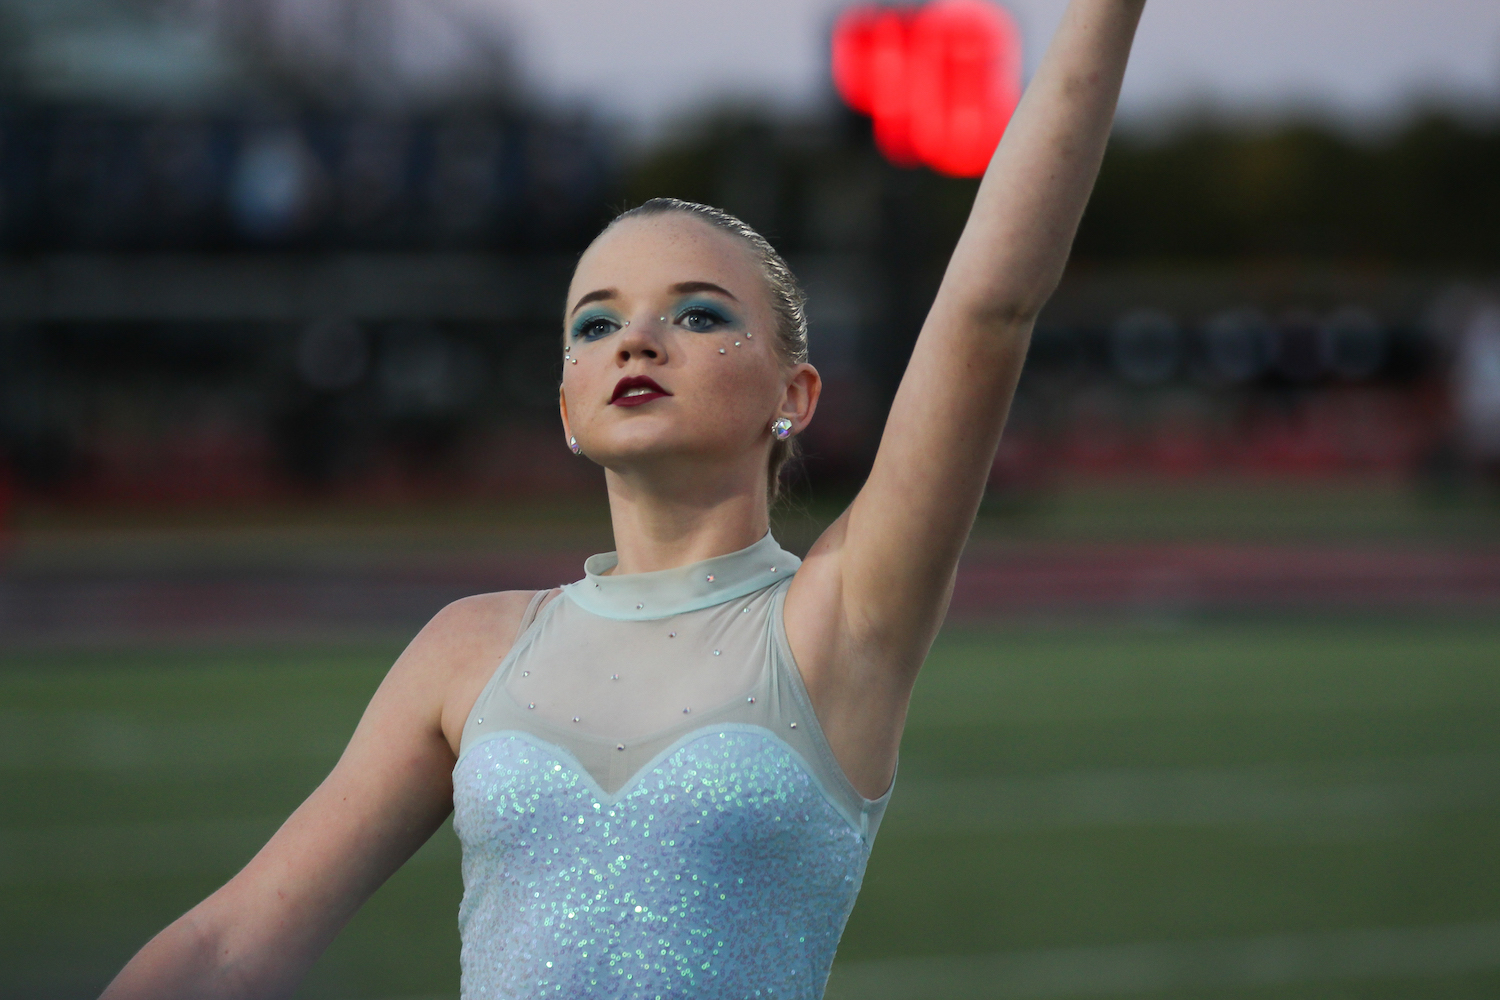 Freshman+Mackenzie+Miller+dances+with+the+color+guard+as+they+perform+with+the+band+before+the+football+game.+